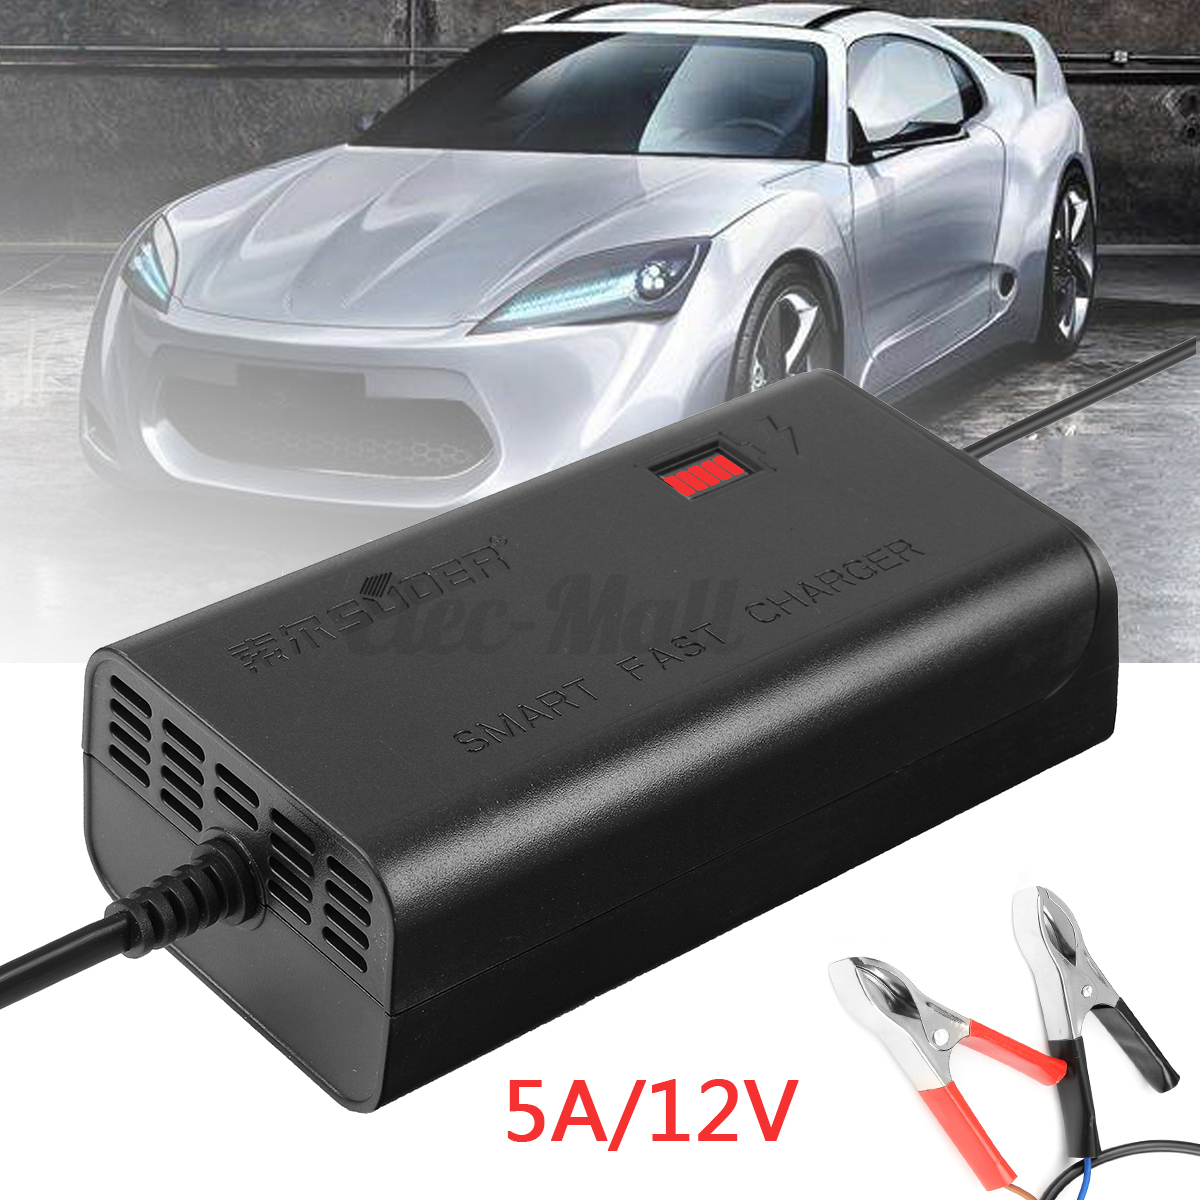 12v 5a 6a 10a smart car motorcycle pwm battery charger automatic intelligent ebay. Black Bedroom Furniture Sets. Home Design Ideas